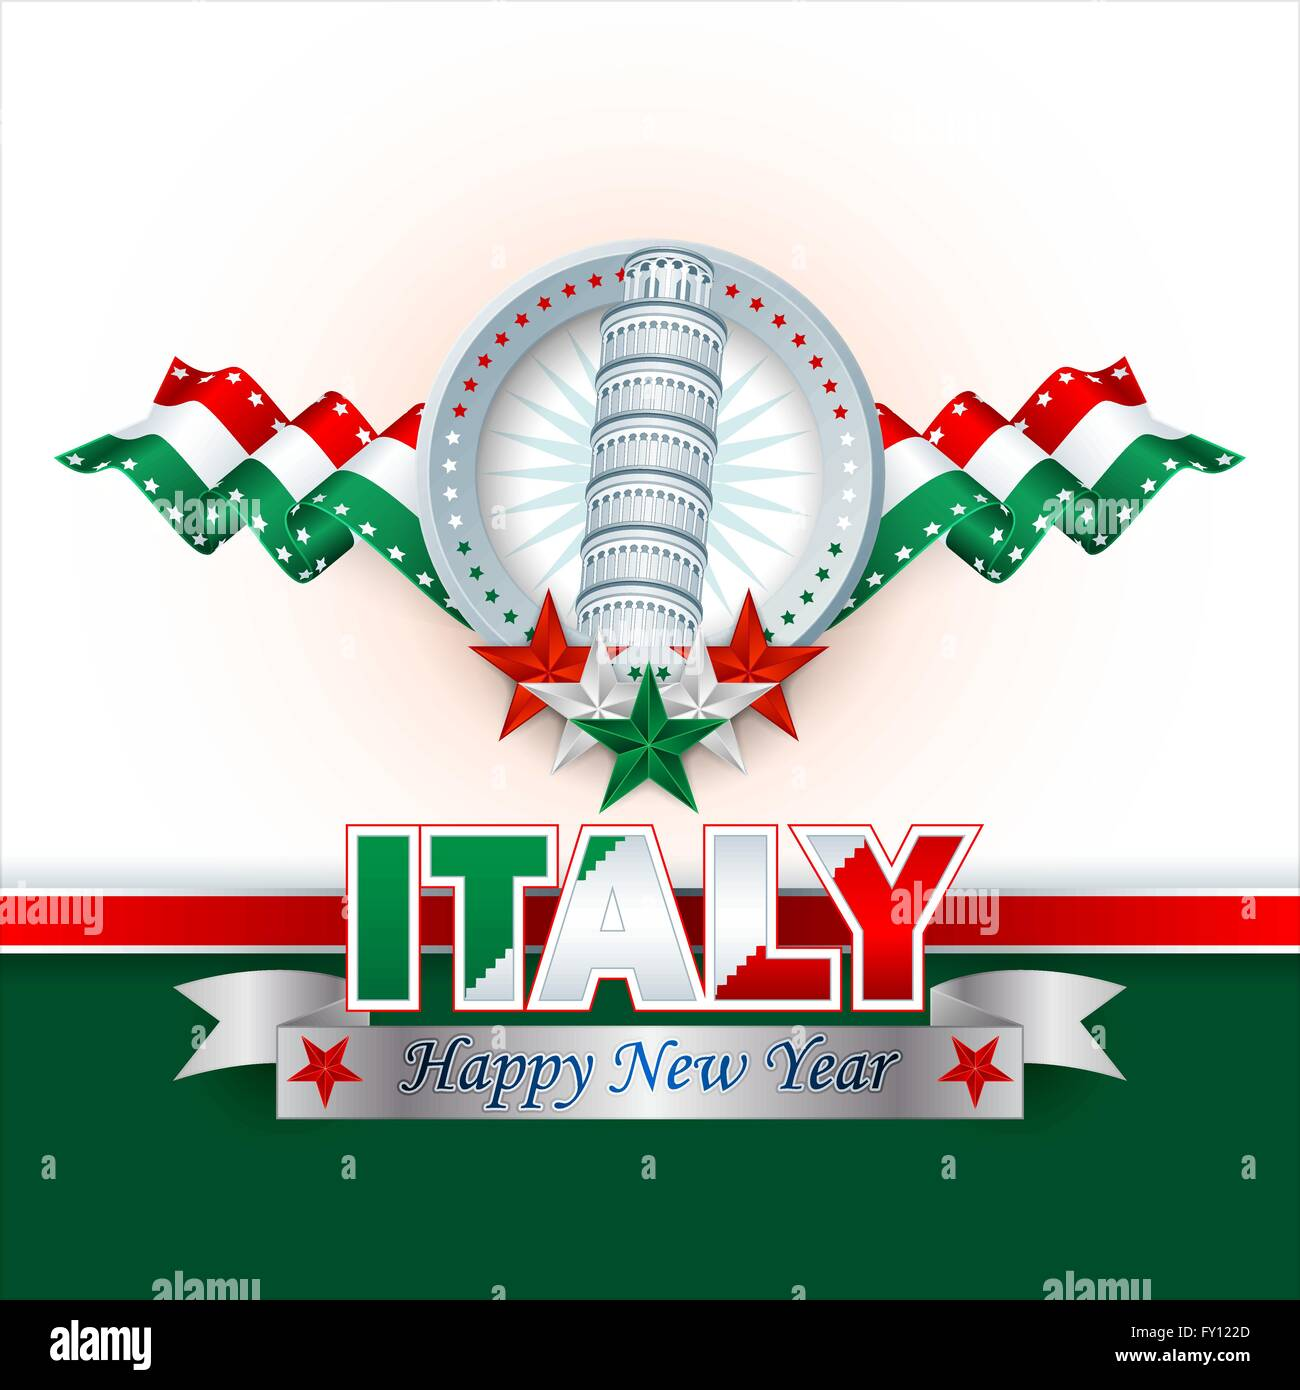 happy new year background with stars and flag in national colors of italy tower of pisa shapes for italian new year celebration